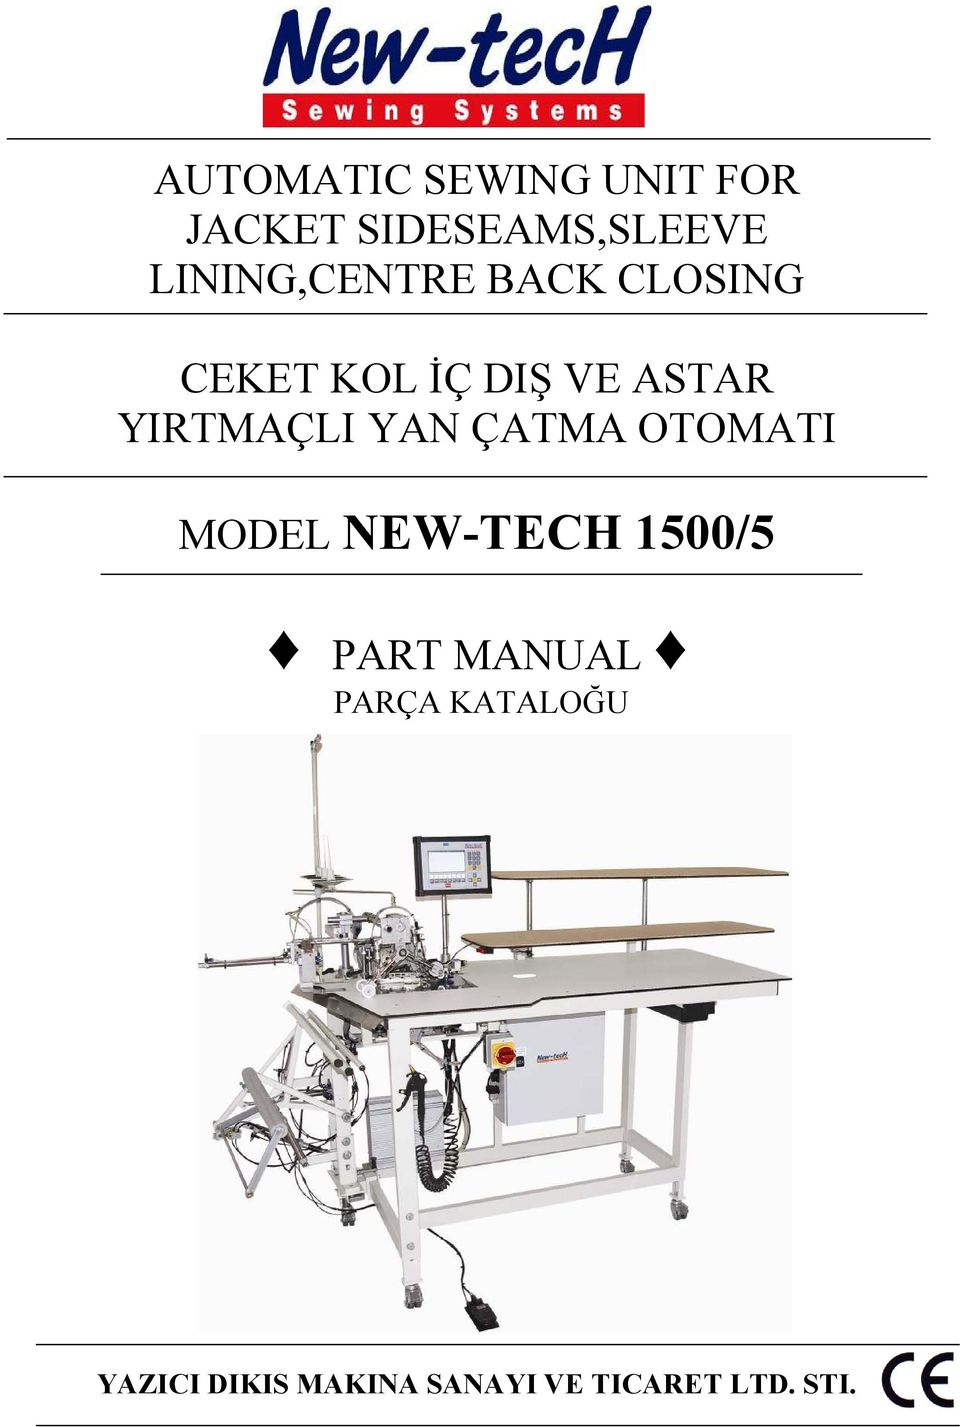 YIRTMAÇLI YAN ÇATMA OTOMATI MODEL NEW-TECH 1500/5 PART